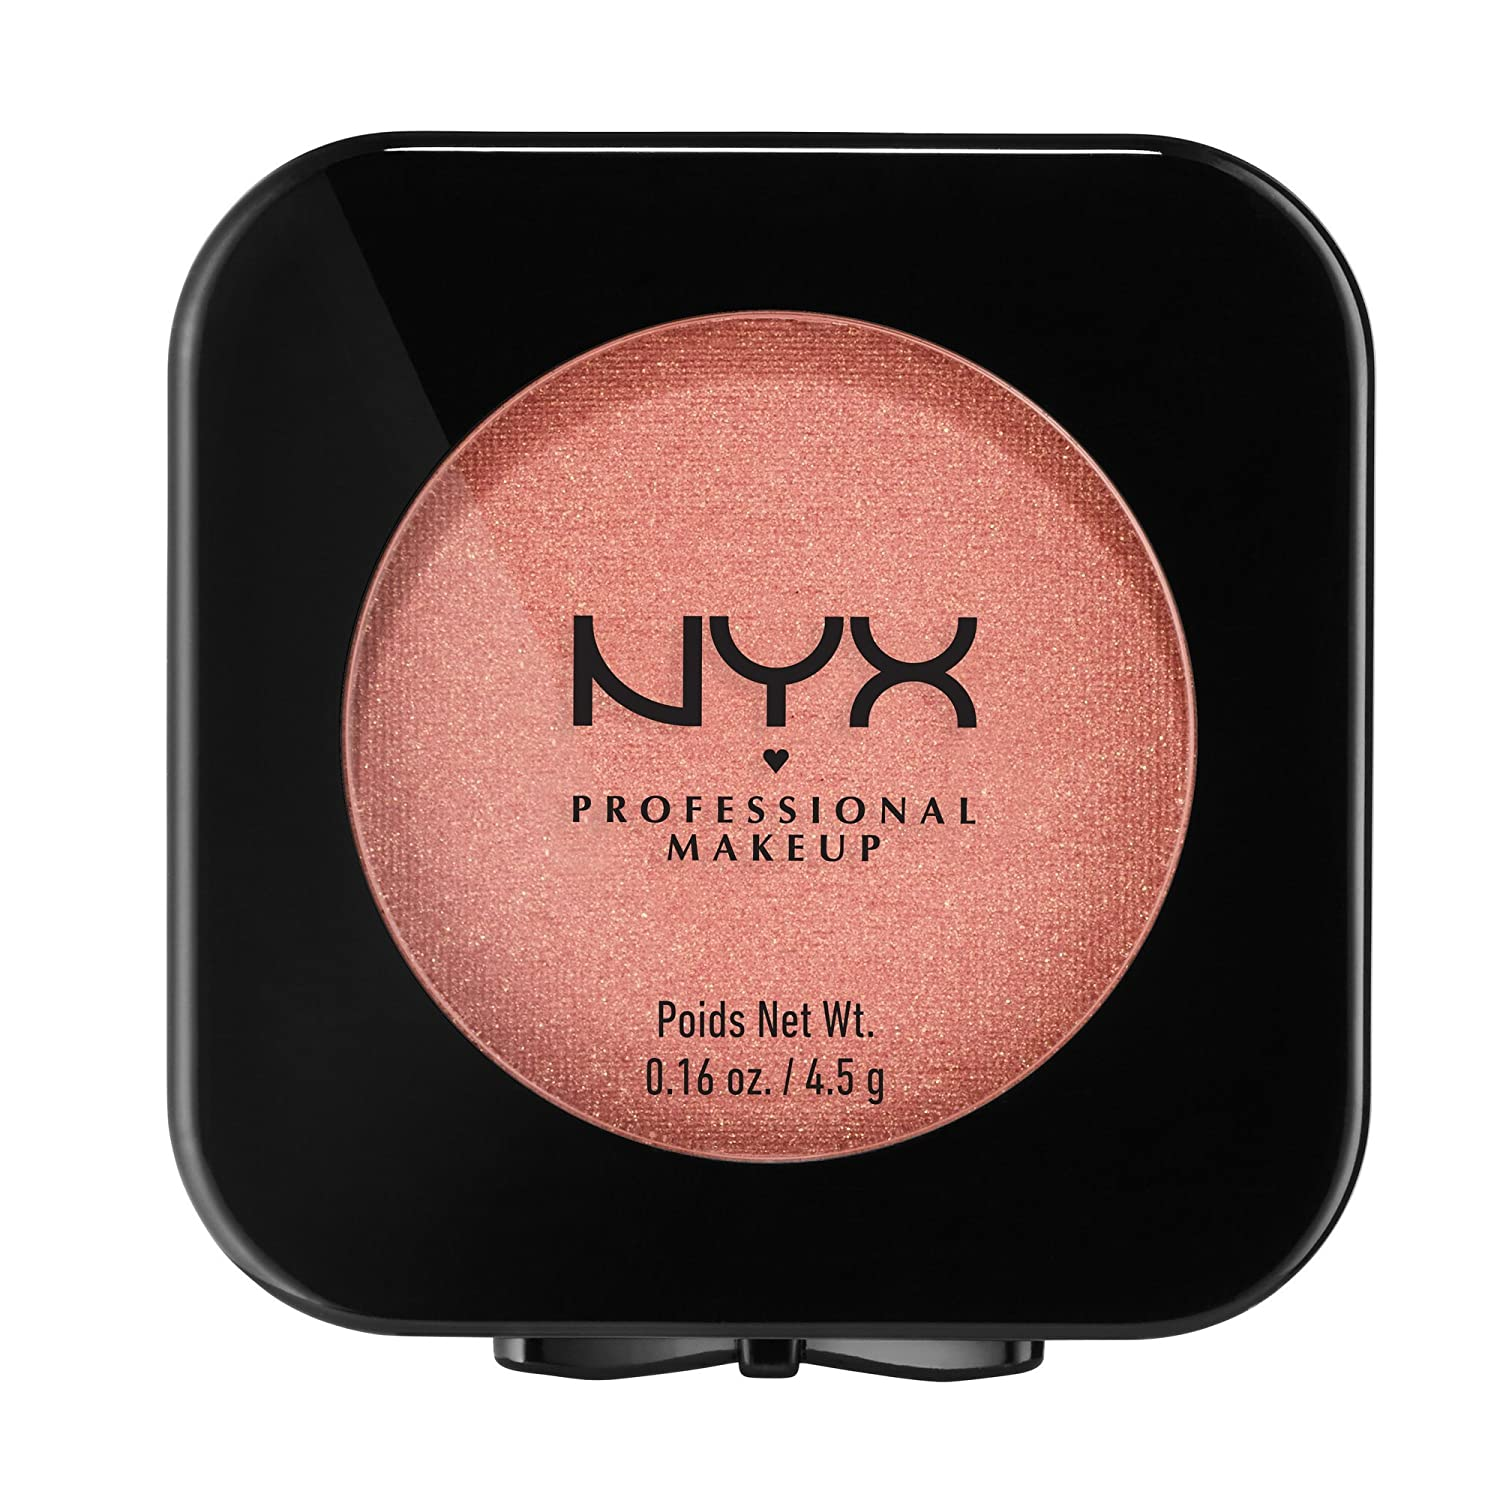 NYX PROFESSIONAL MAKEUP High Definition Blush, Rose Gold, 0.16 Ounce HDB13